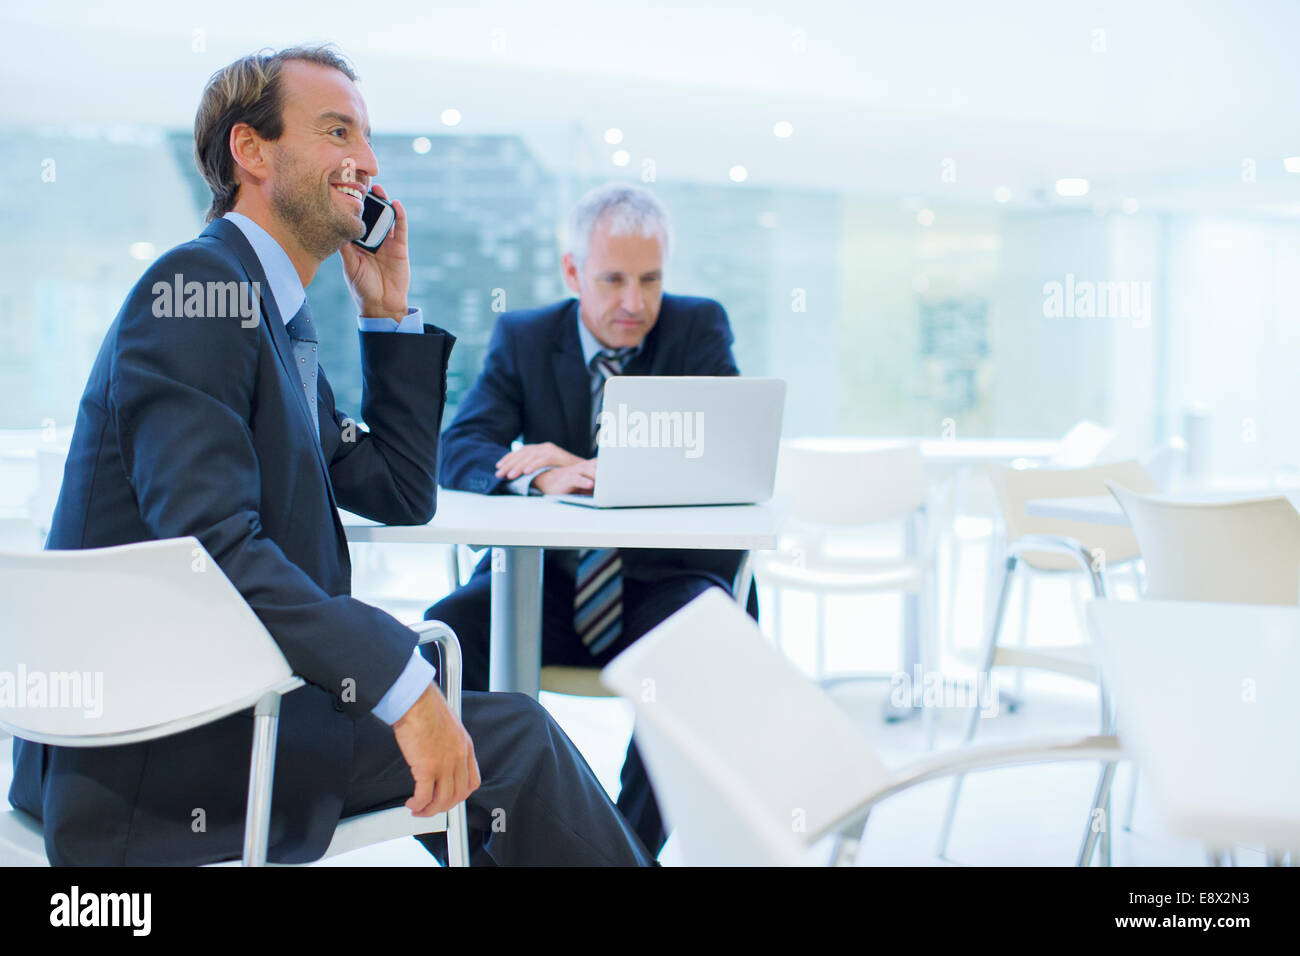 Businessman talking on call phone in office building cafe - Stock Image